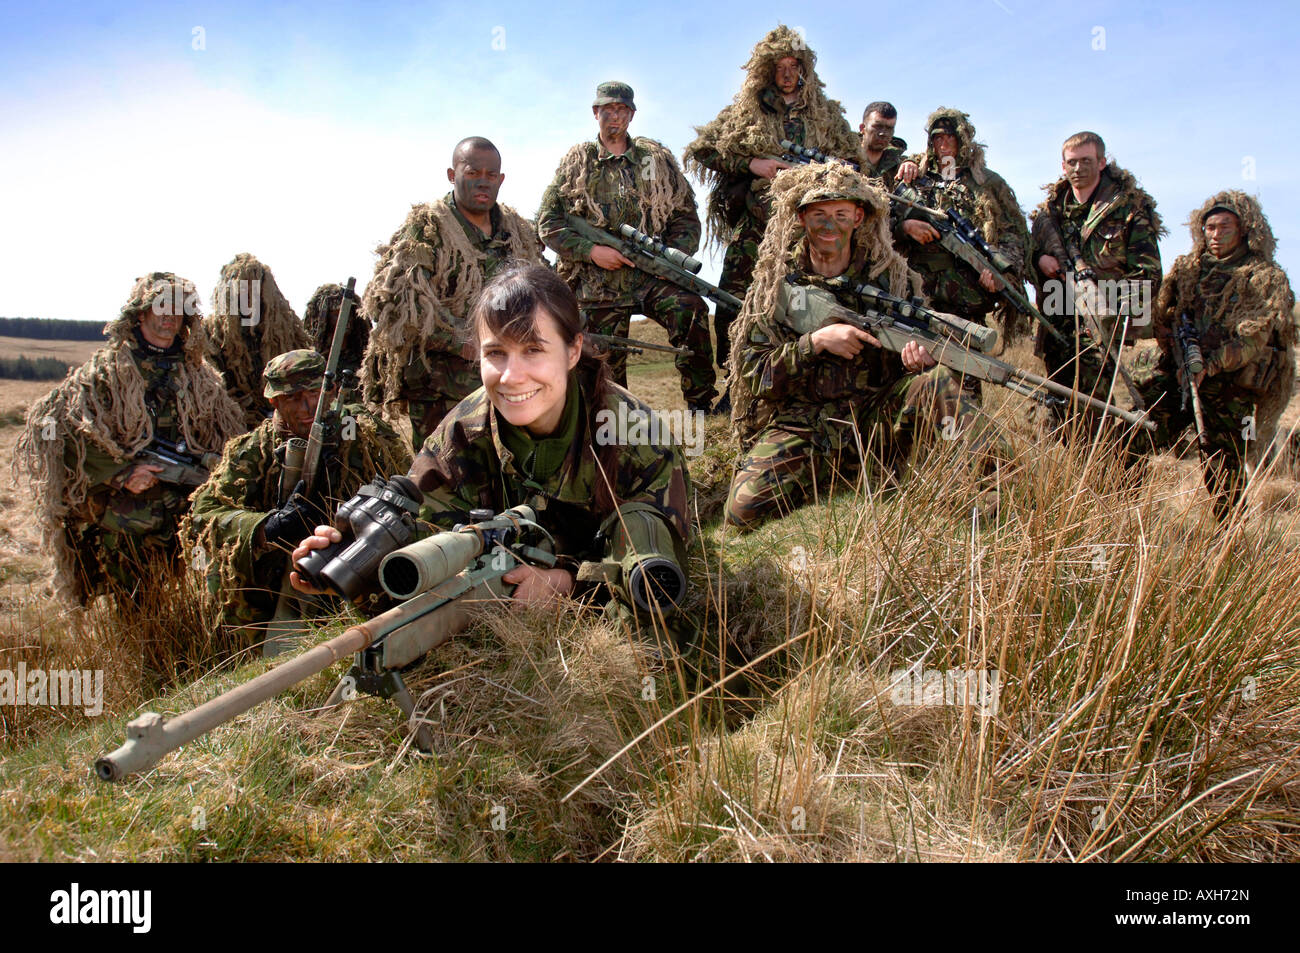 A BRITISH ARMY FEMALE RECRUIT AT A FIRING RANGE IN BRECON WALES DURING A SNIPER  TRAINING